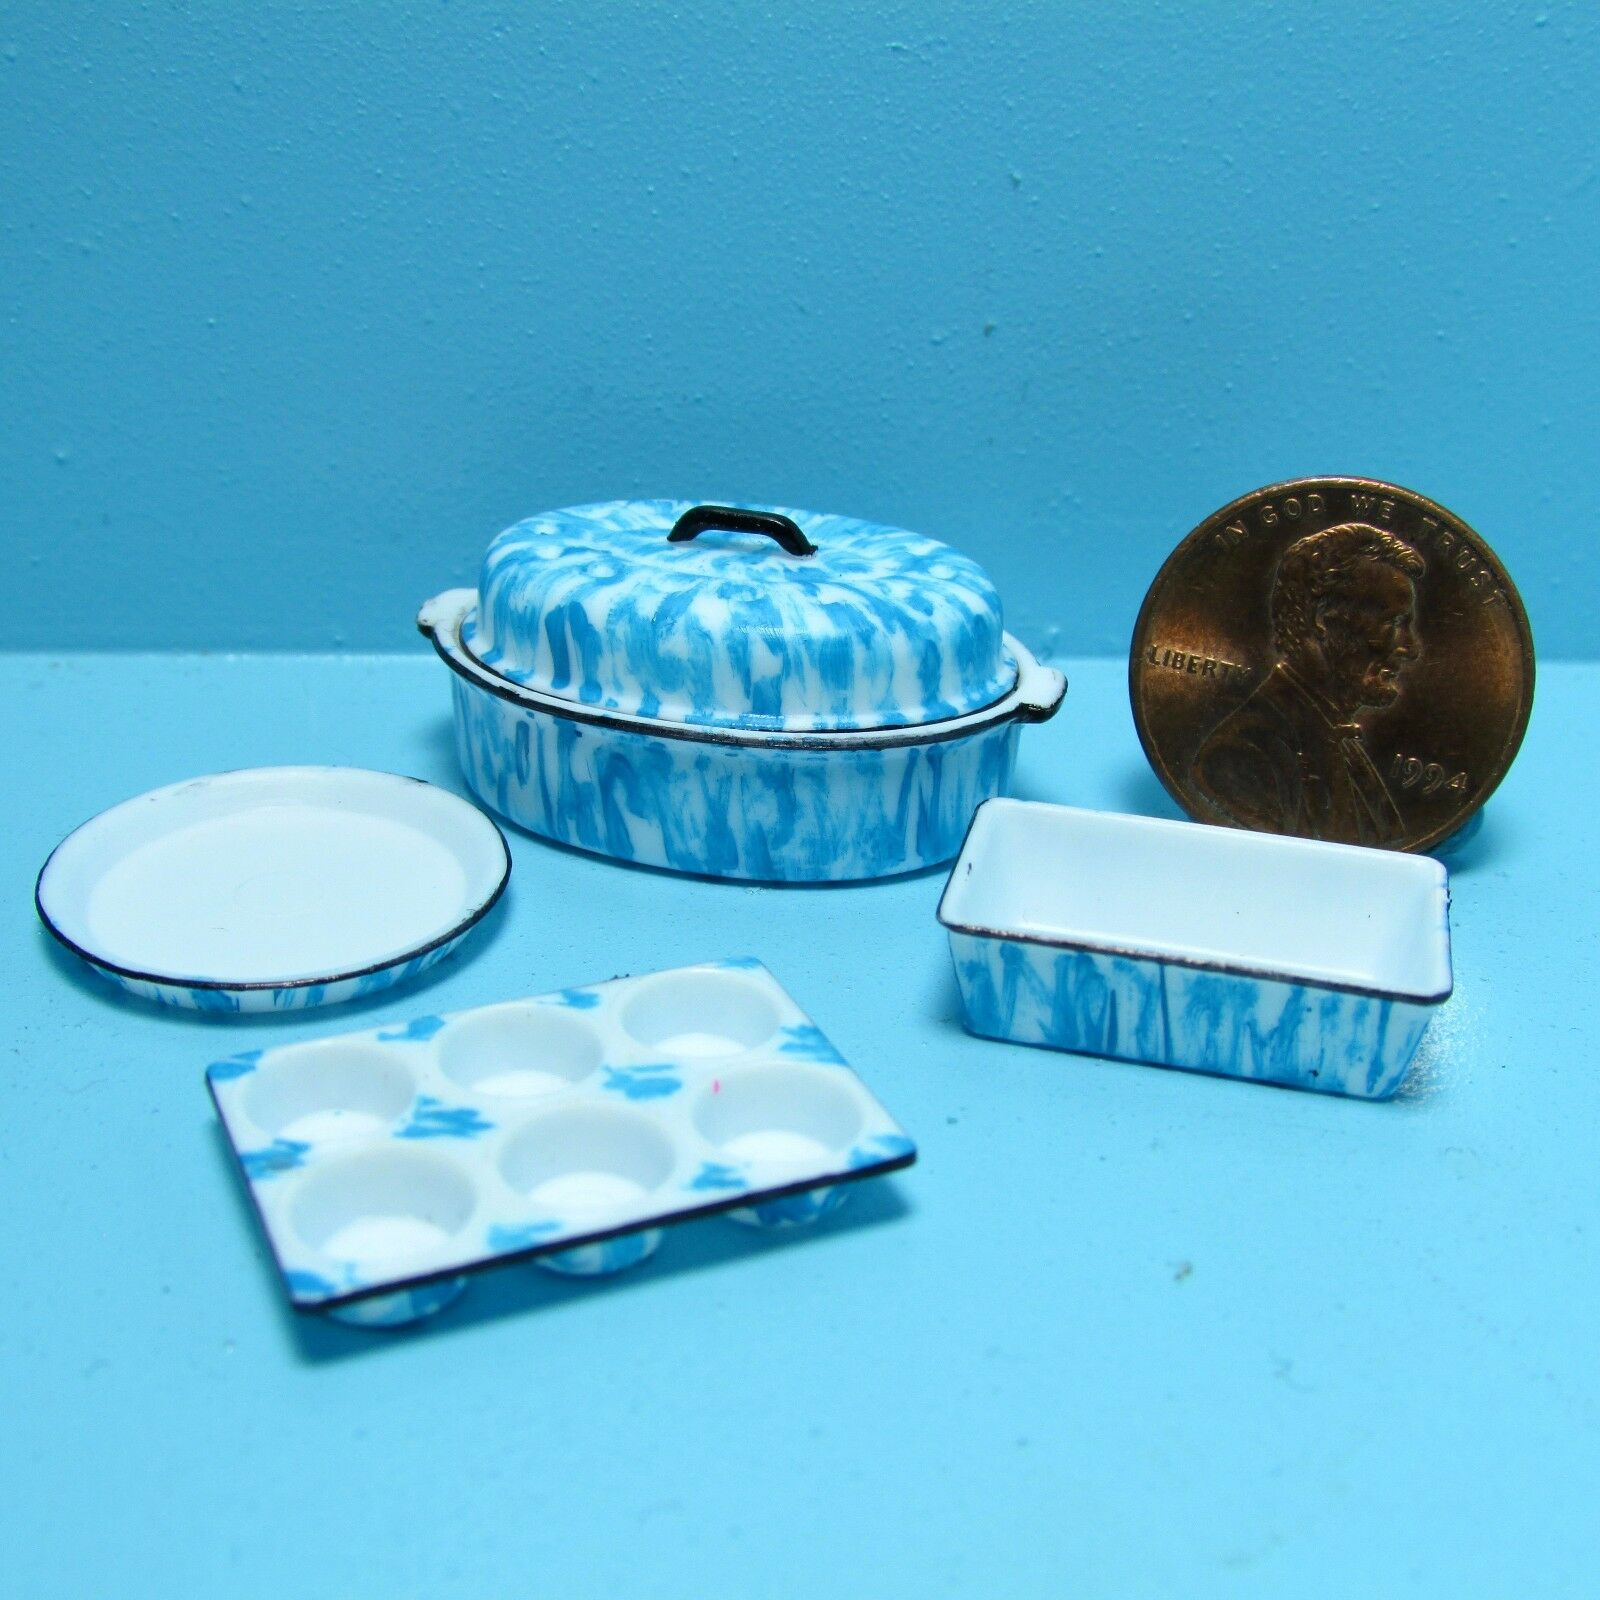 Dollhouse Miniature Kitchen Cookware Set with Blue Spatterware ...